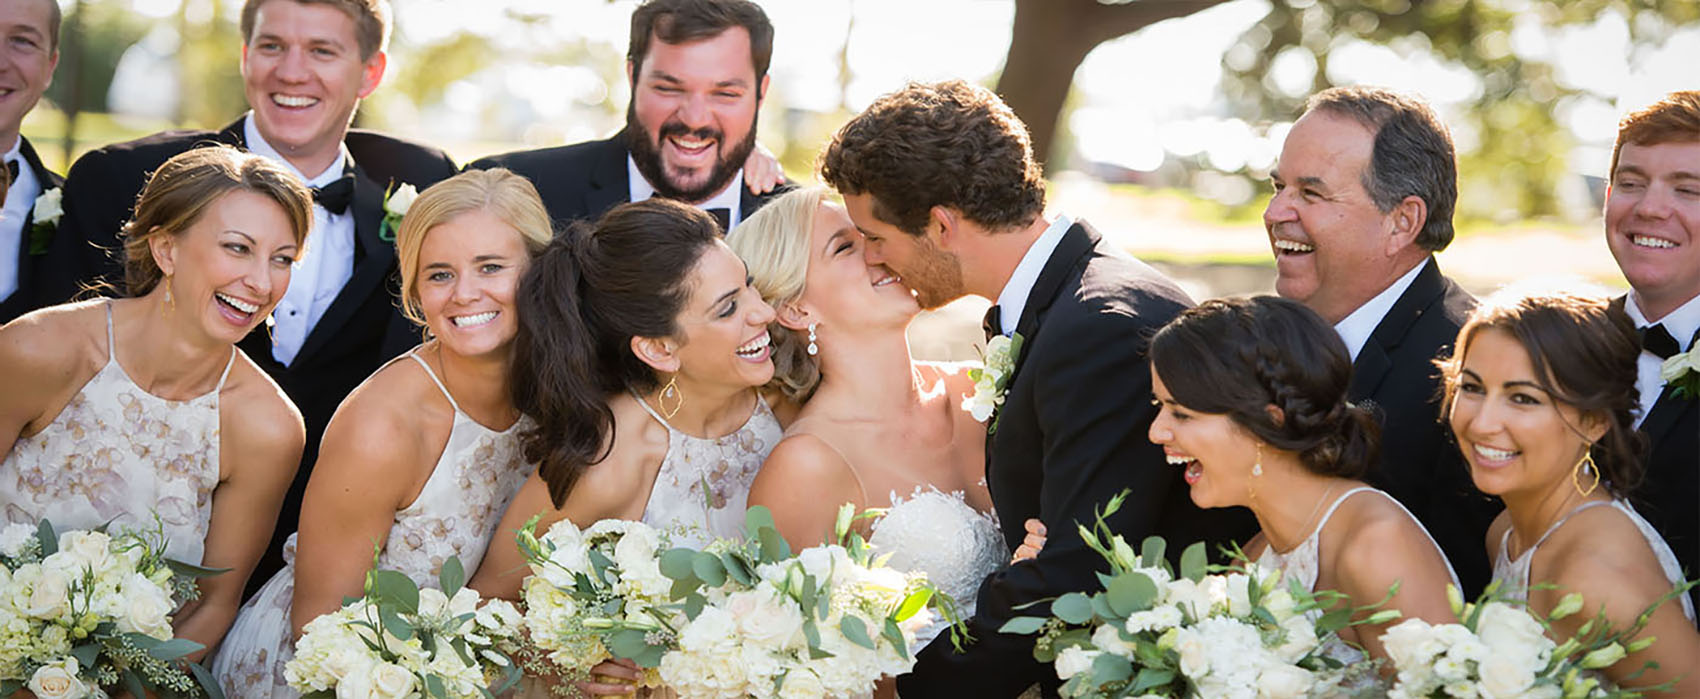 Bride and groom hug and kiss surrounded by wedding party laughing and smiling.